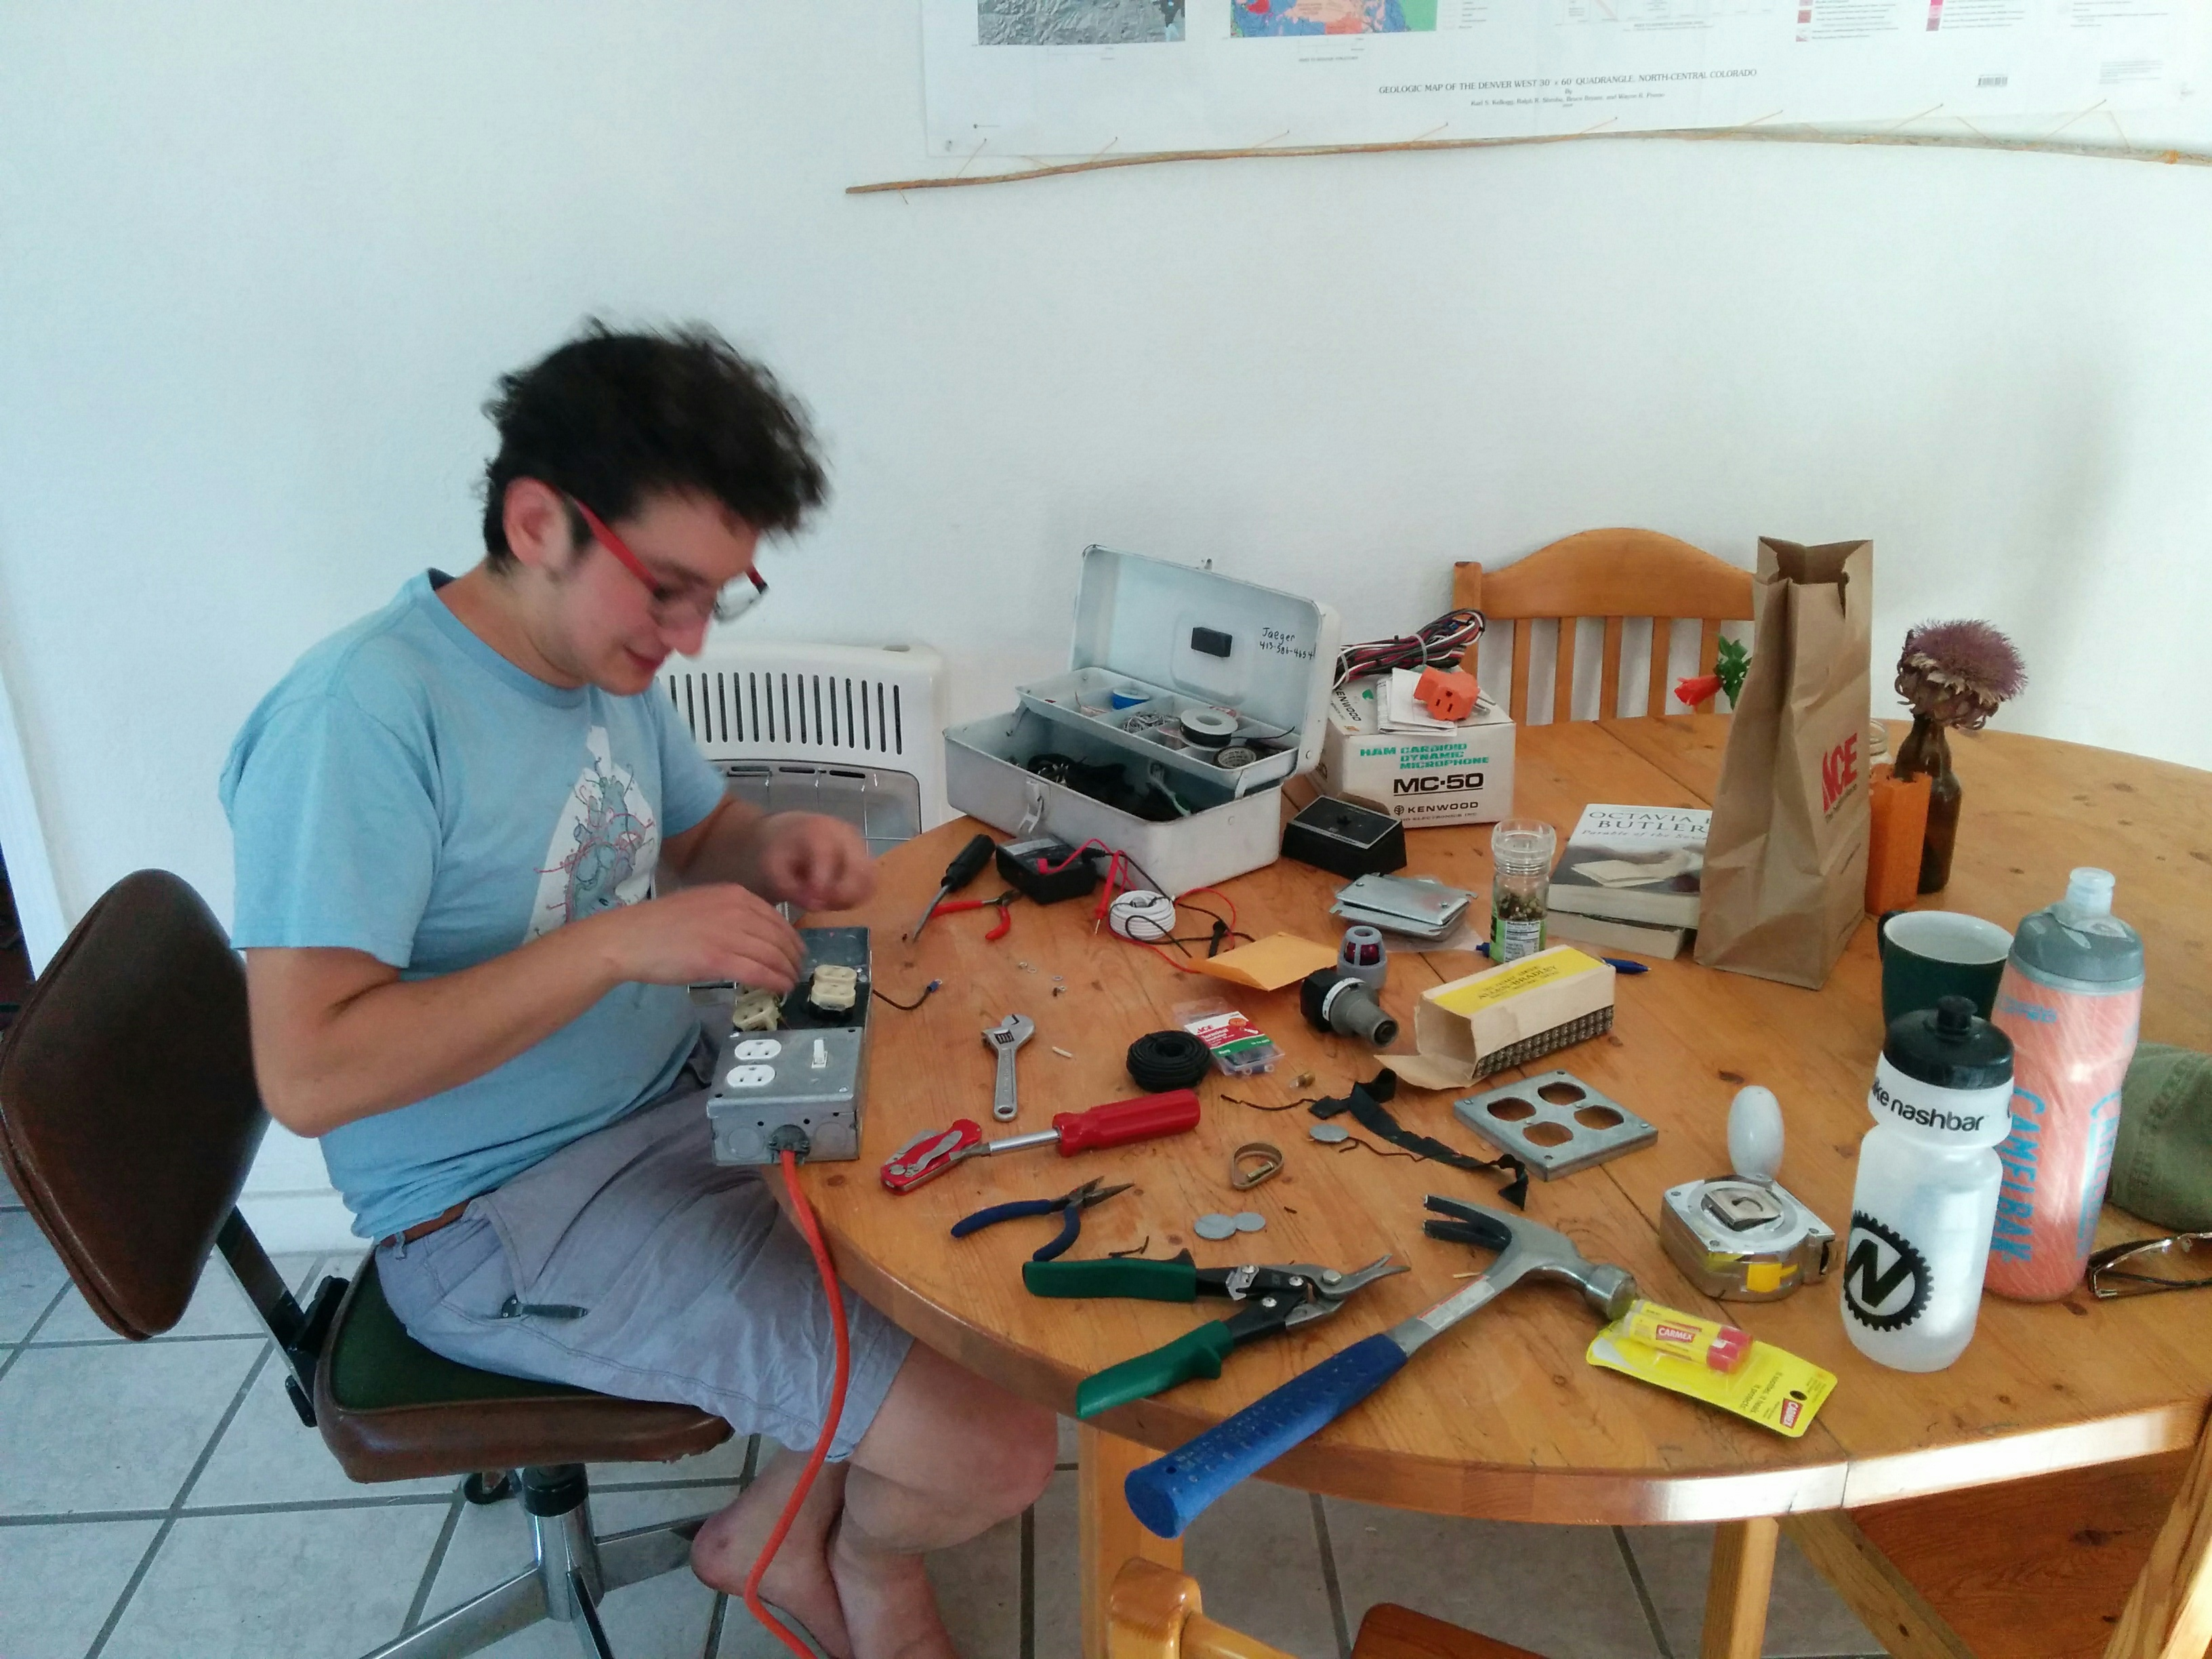 Working on assembly and wiring of the Overly-Dramatic Power Indicator Unit (ODPIU).